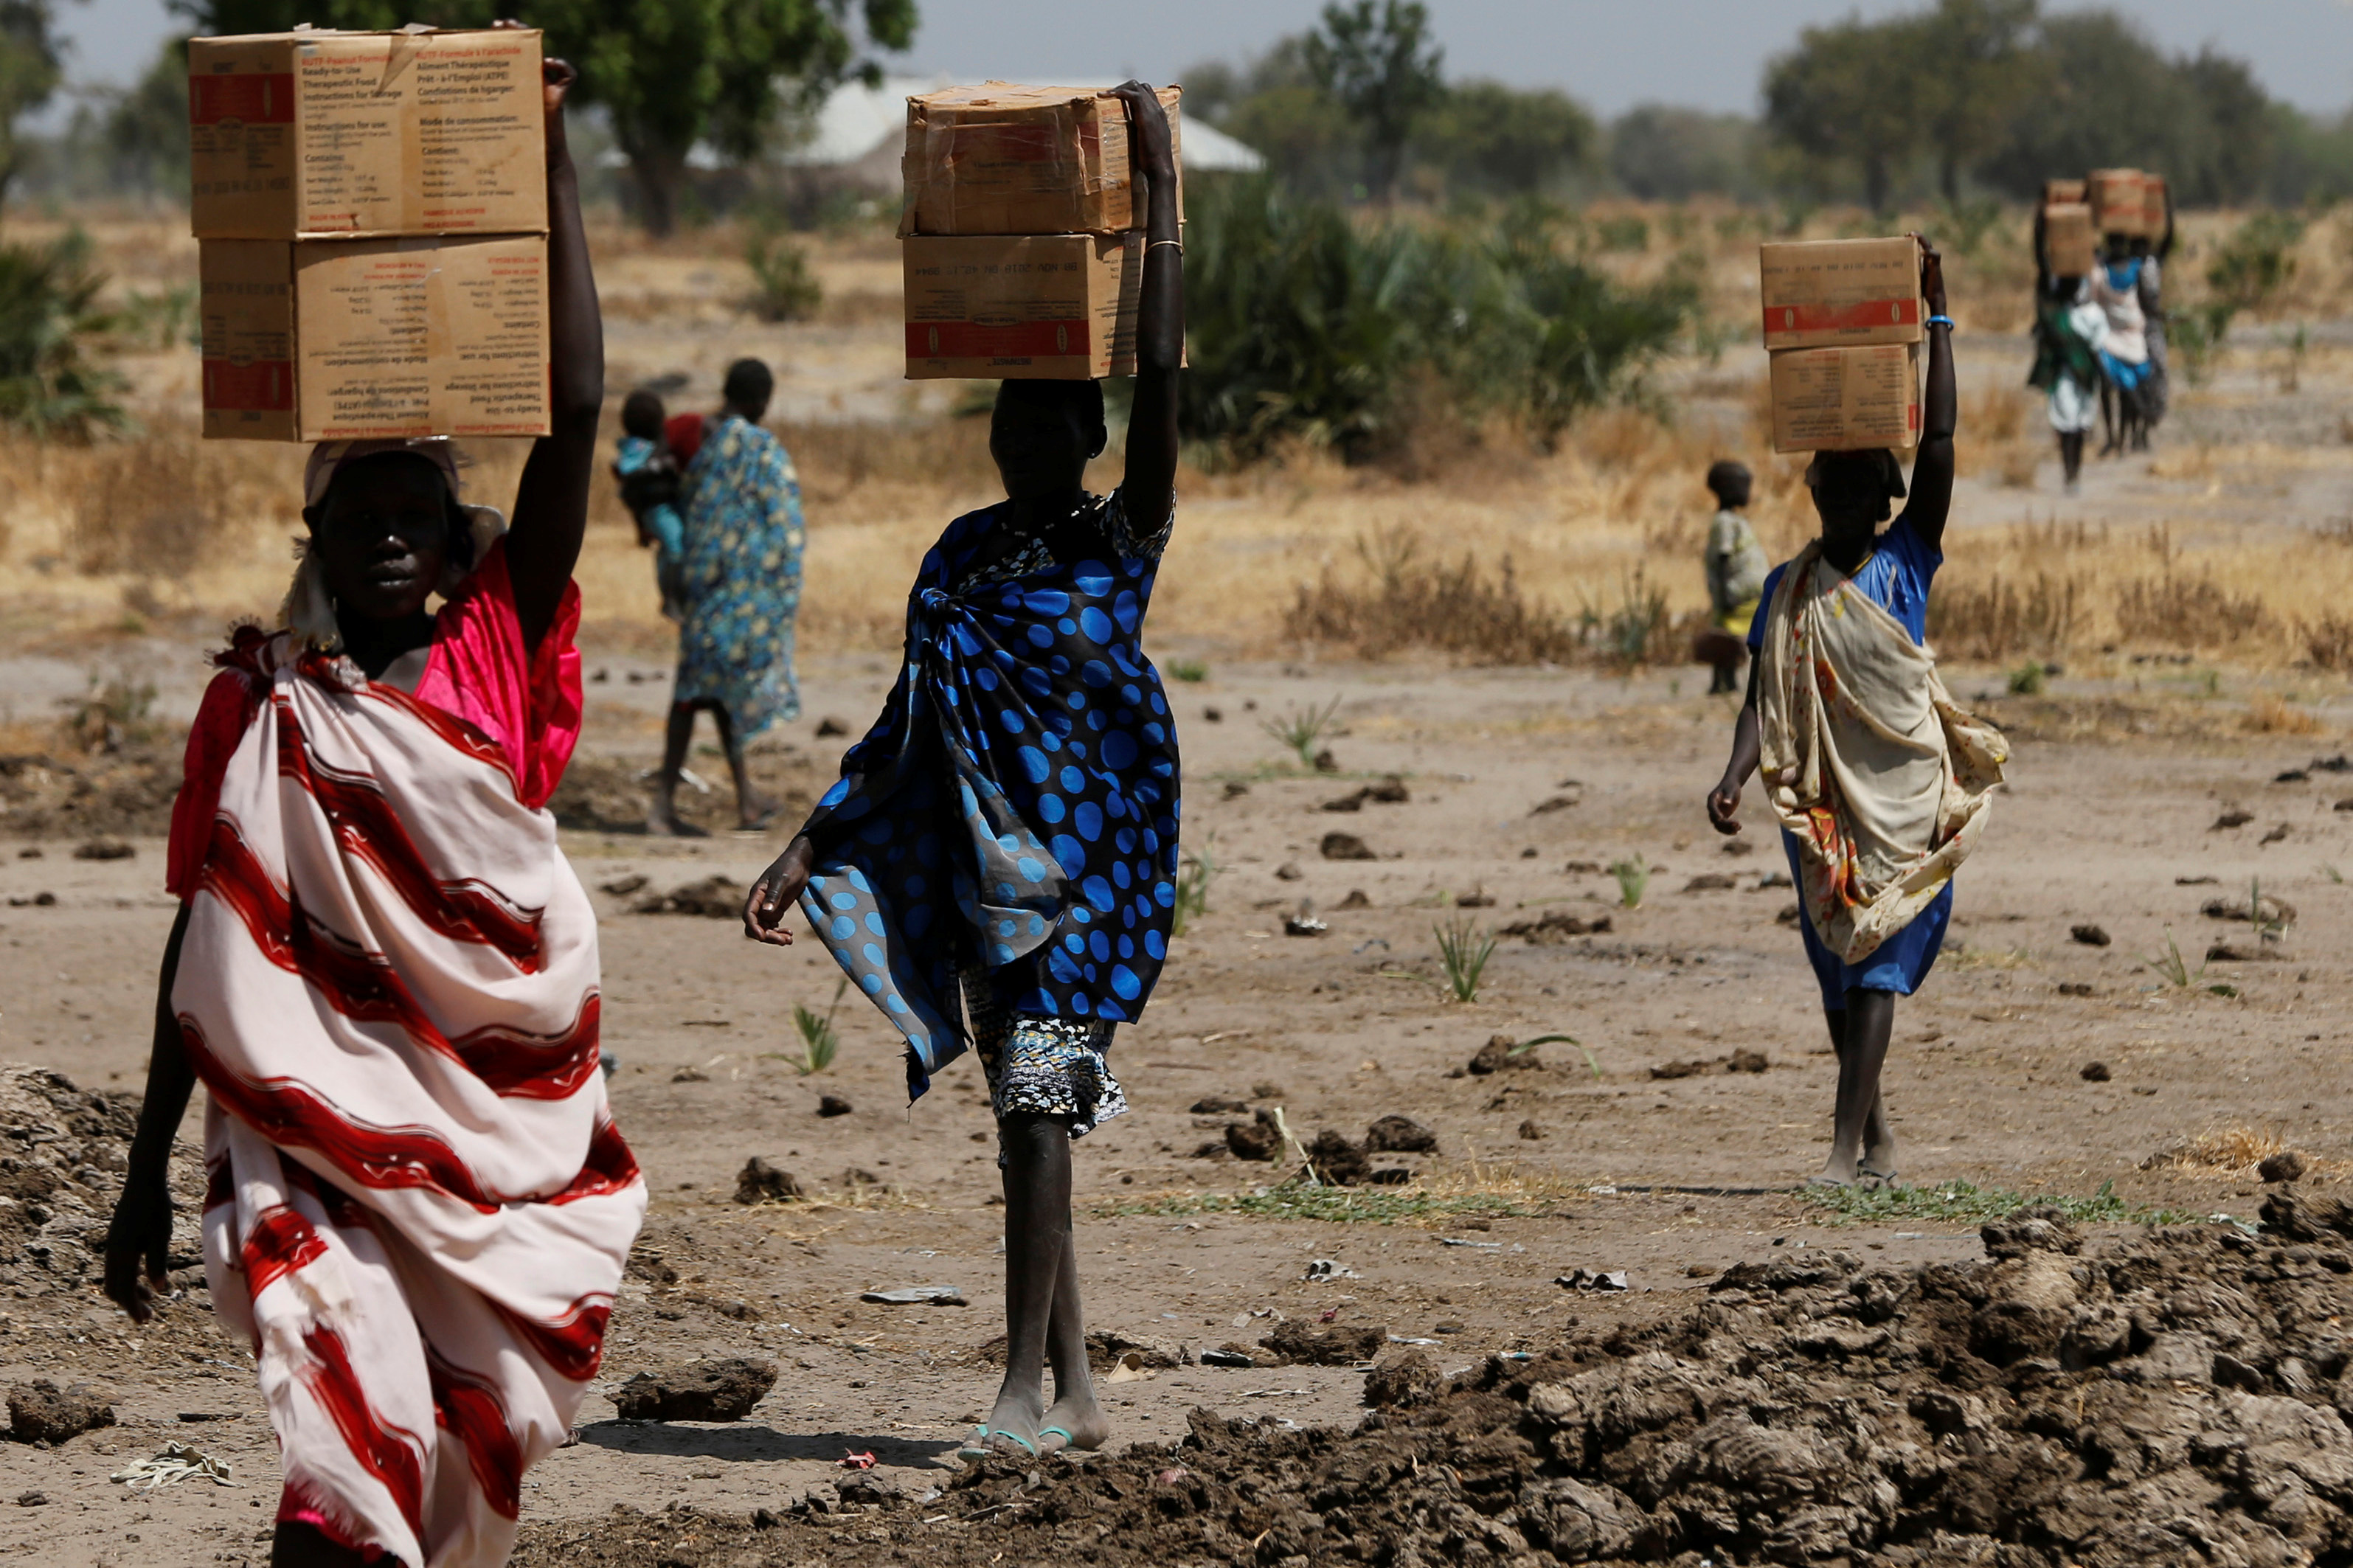 Women carry boxes of nutritional food delivered by the United Nations World Food Programme (UN WFP), in Rubkuai village, Unity State, South Sudan February 16, 2017. Picture taken February 16, 2017. REUTERS/Siegfried Modola - RTSZN6A